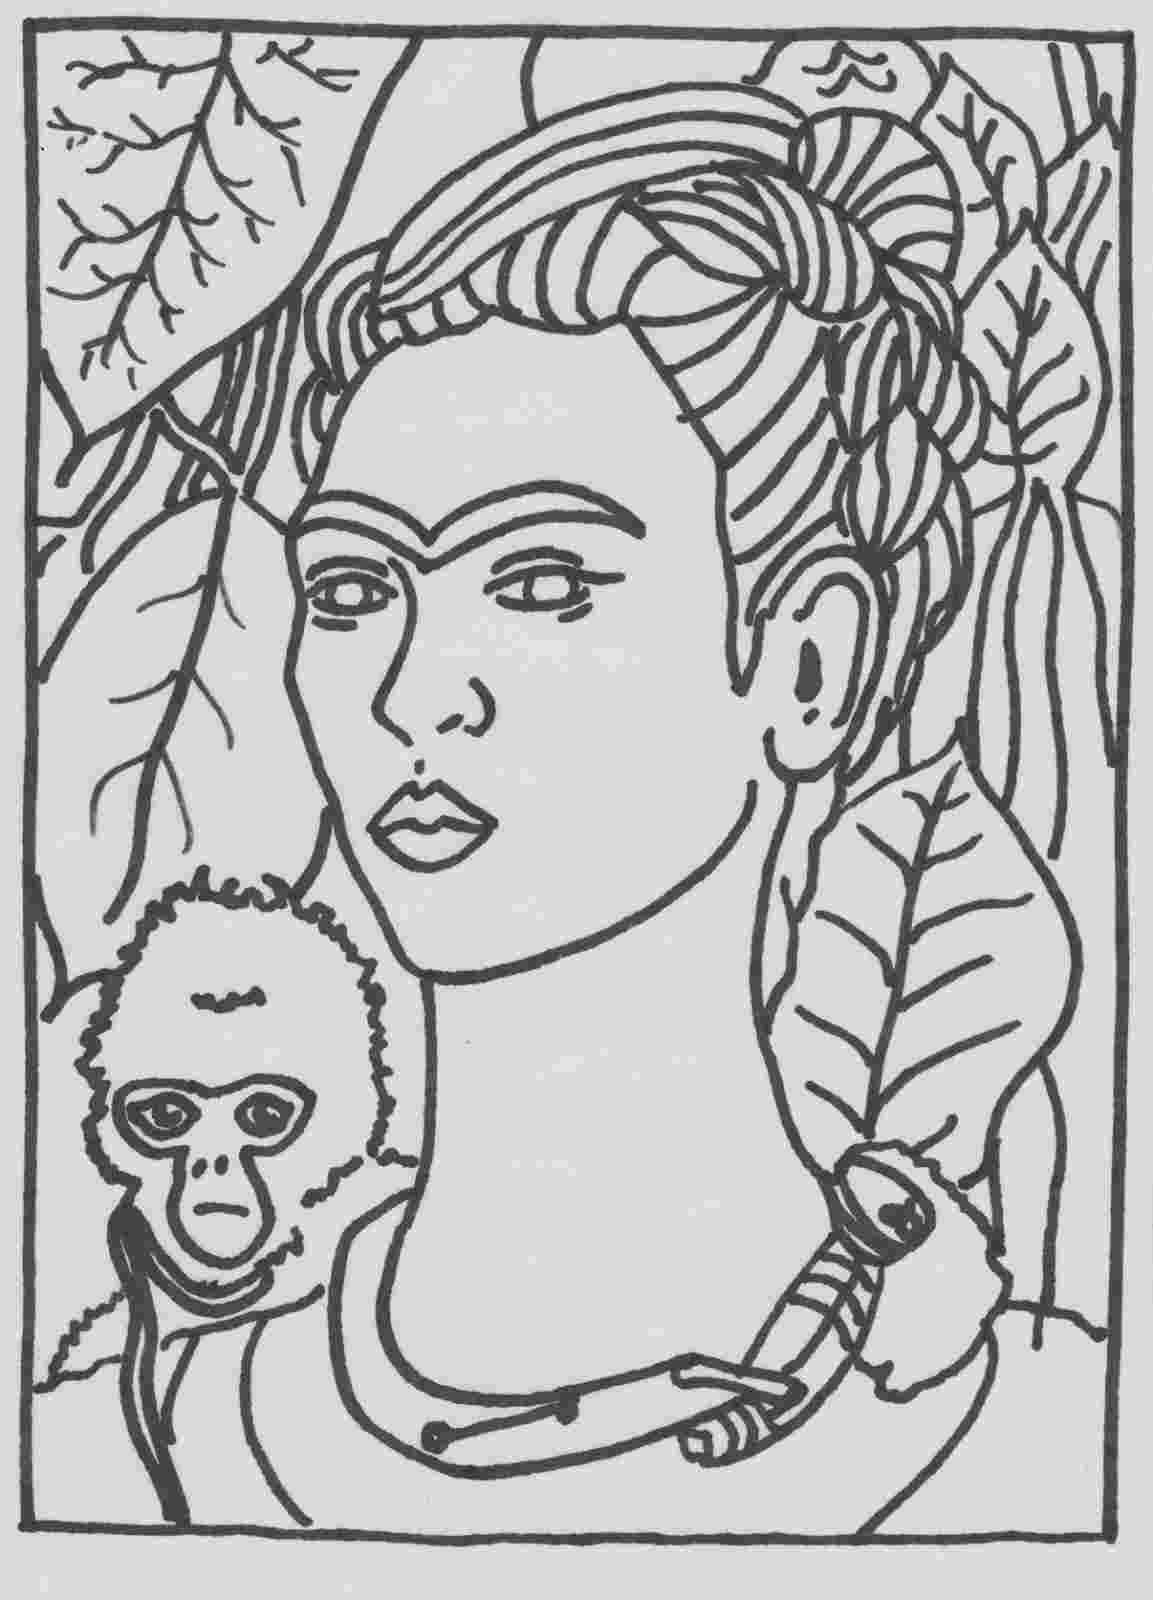 famous artists coloring pages famous art work coloring pages classroom doodles coloring famous artists pages